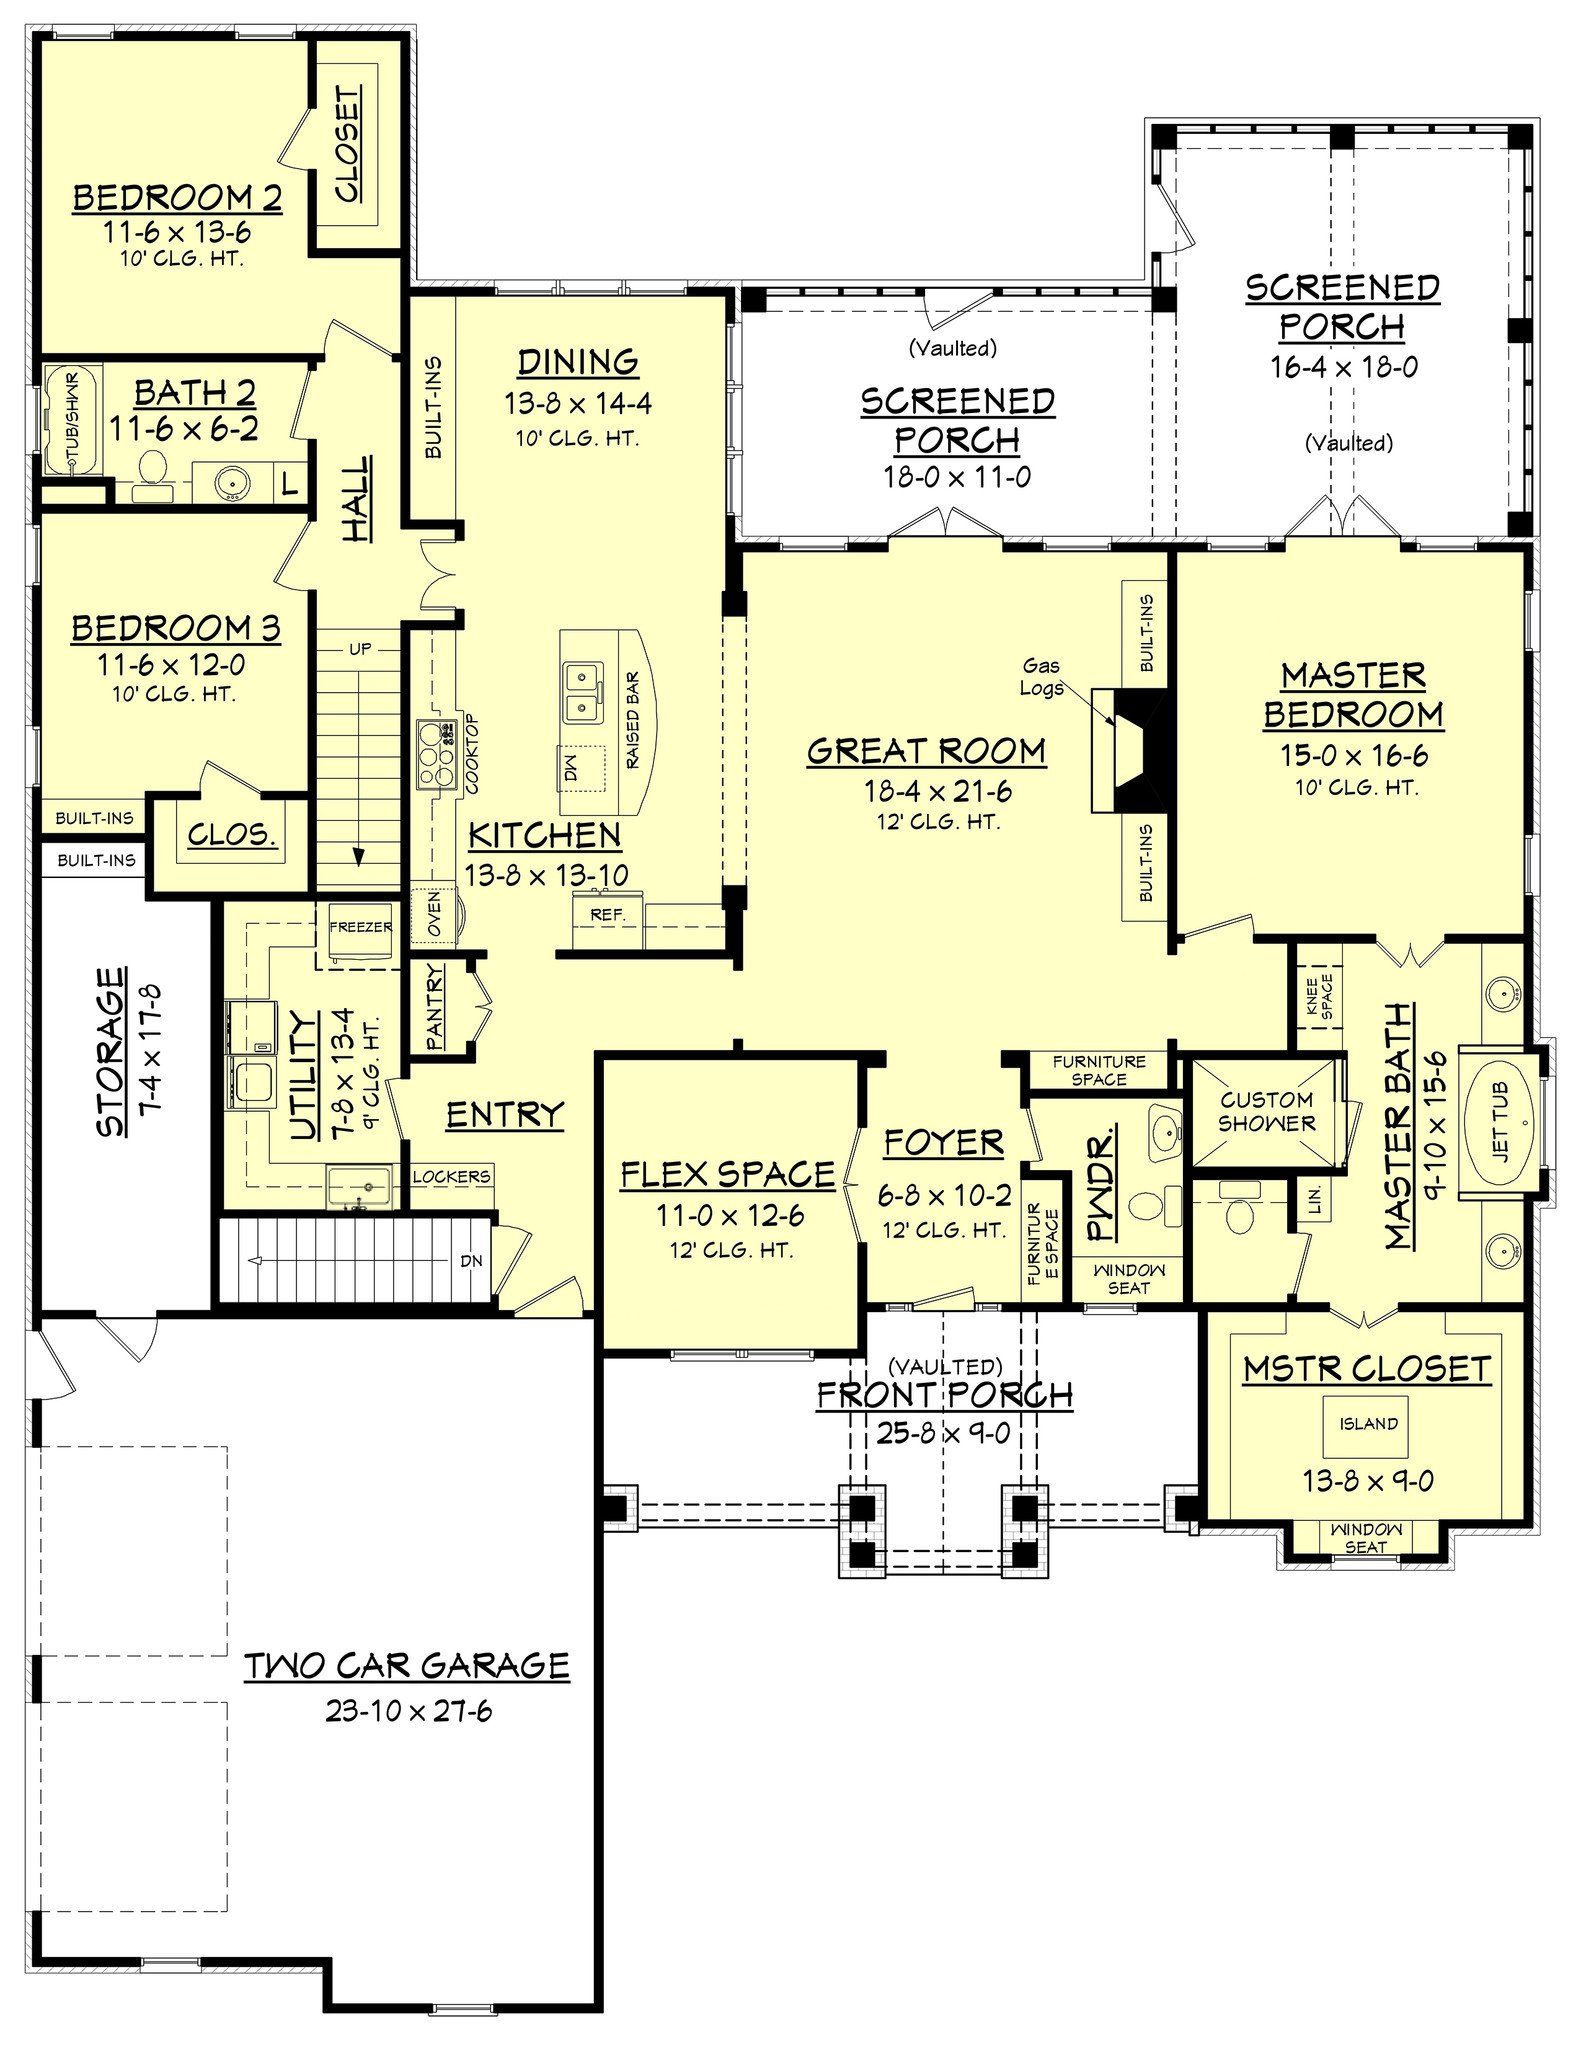 House 7 to 7: layout, design features